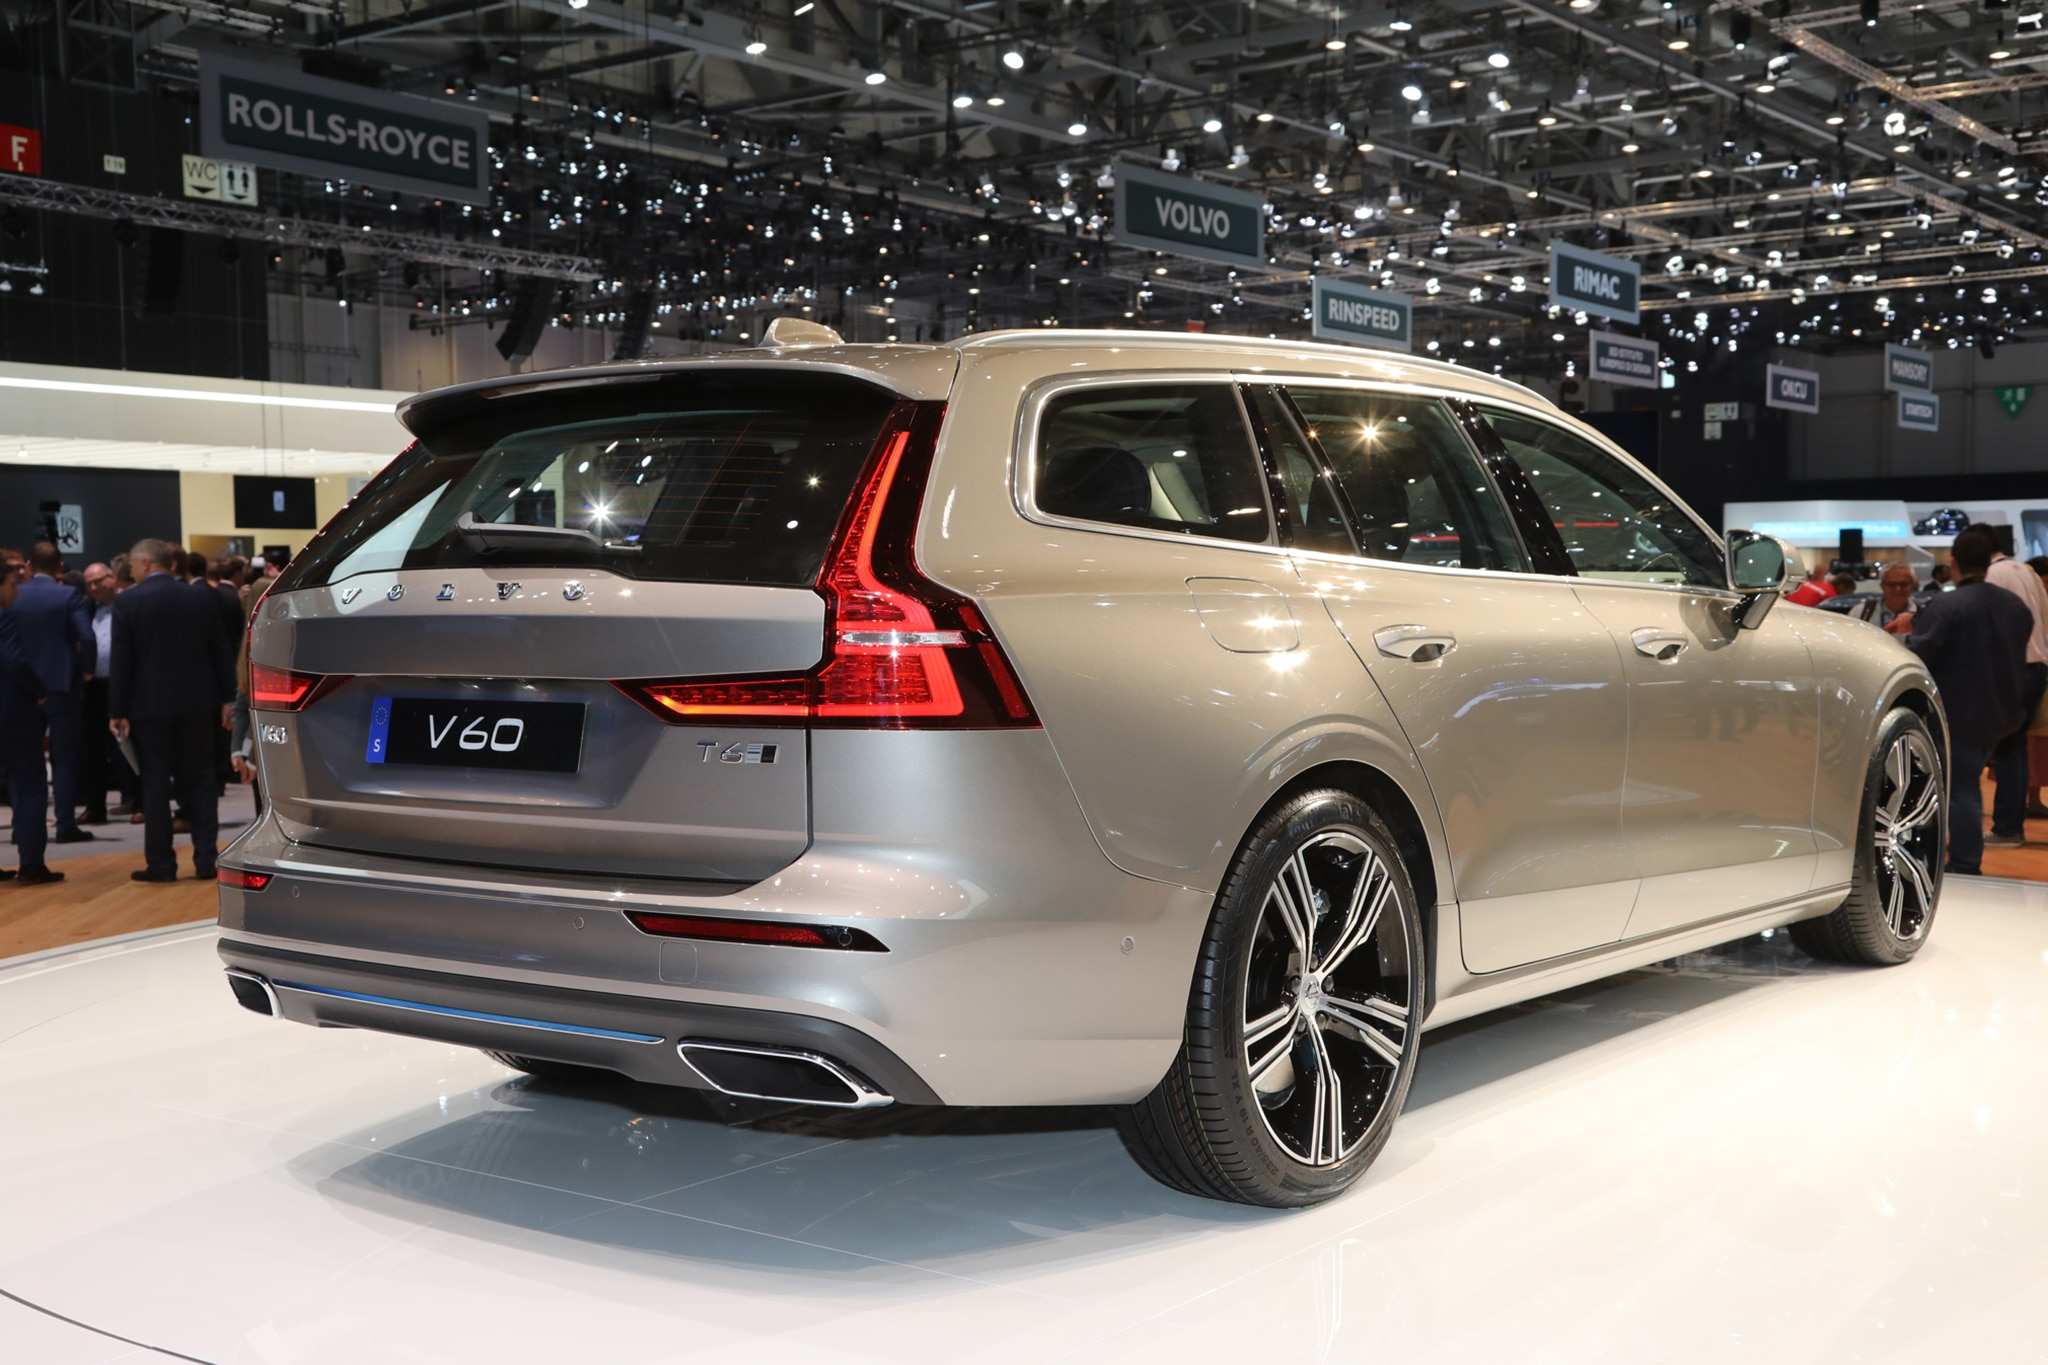 61 New Volvo Auto 2019 Rumors